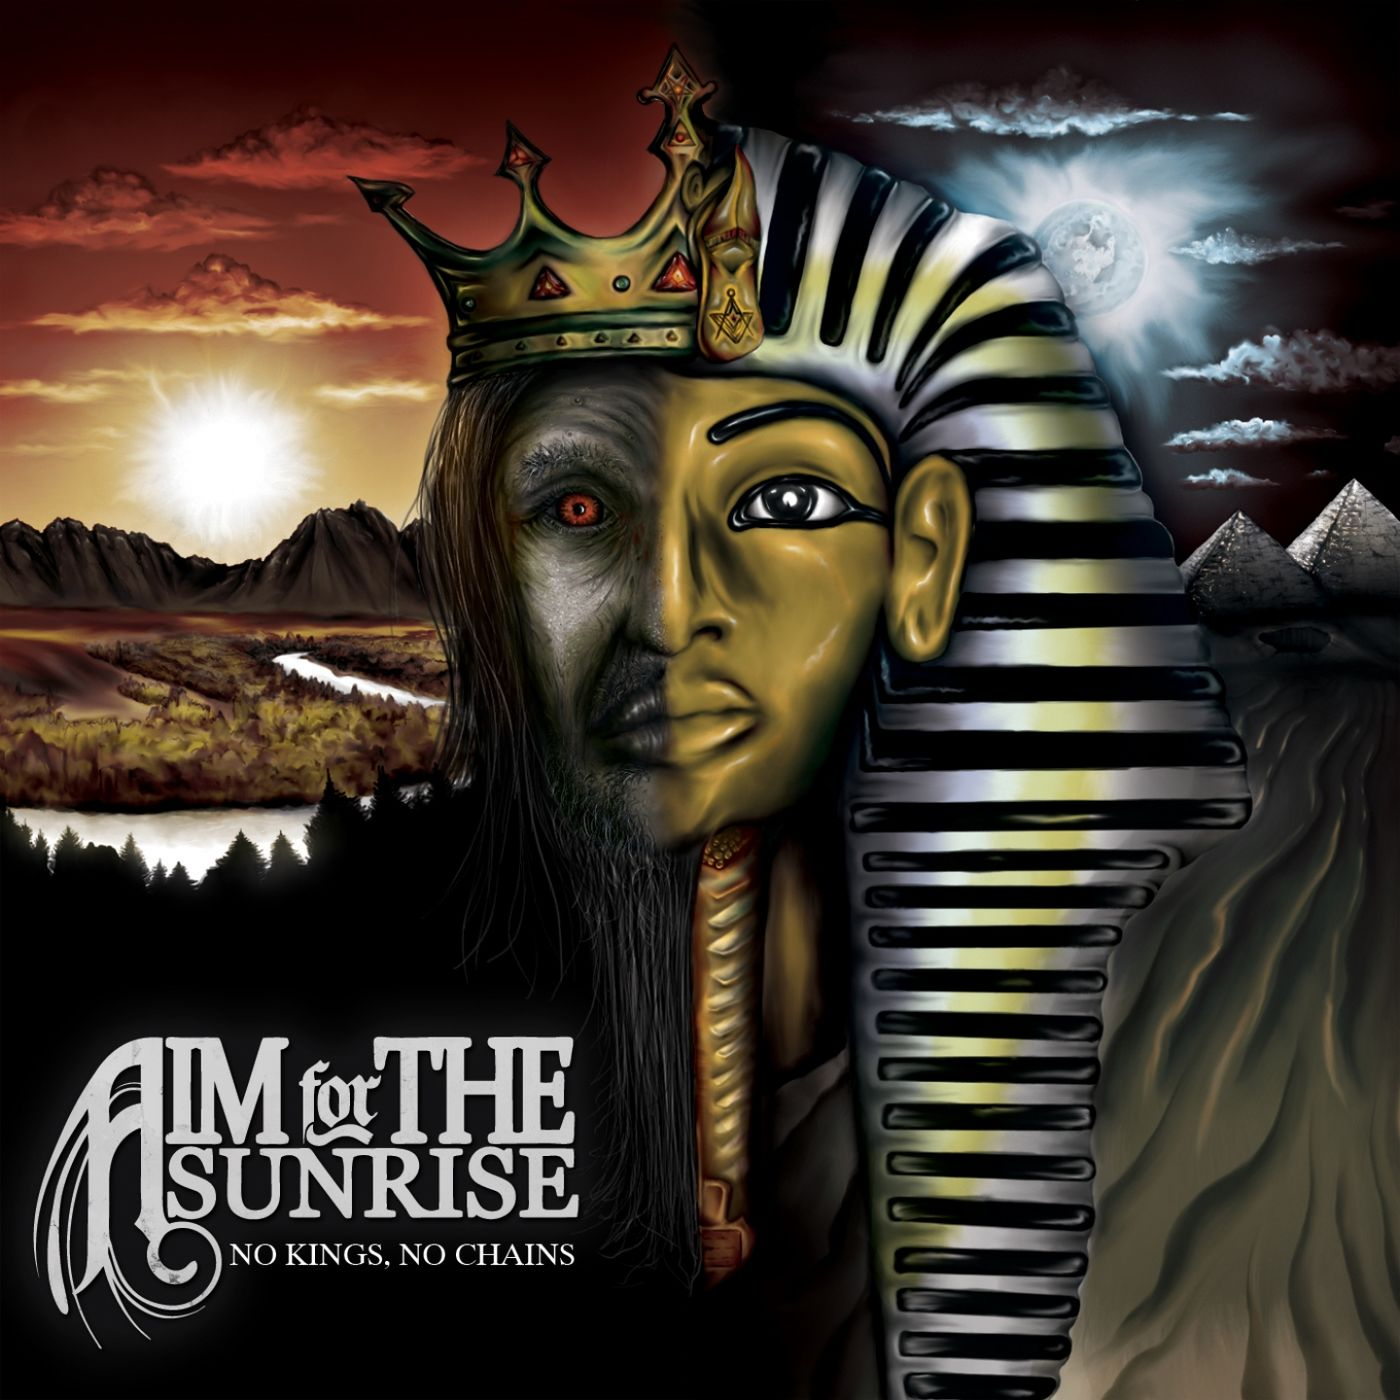 Aim For The Sunrise - No Kings, No Chains (2012)